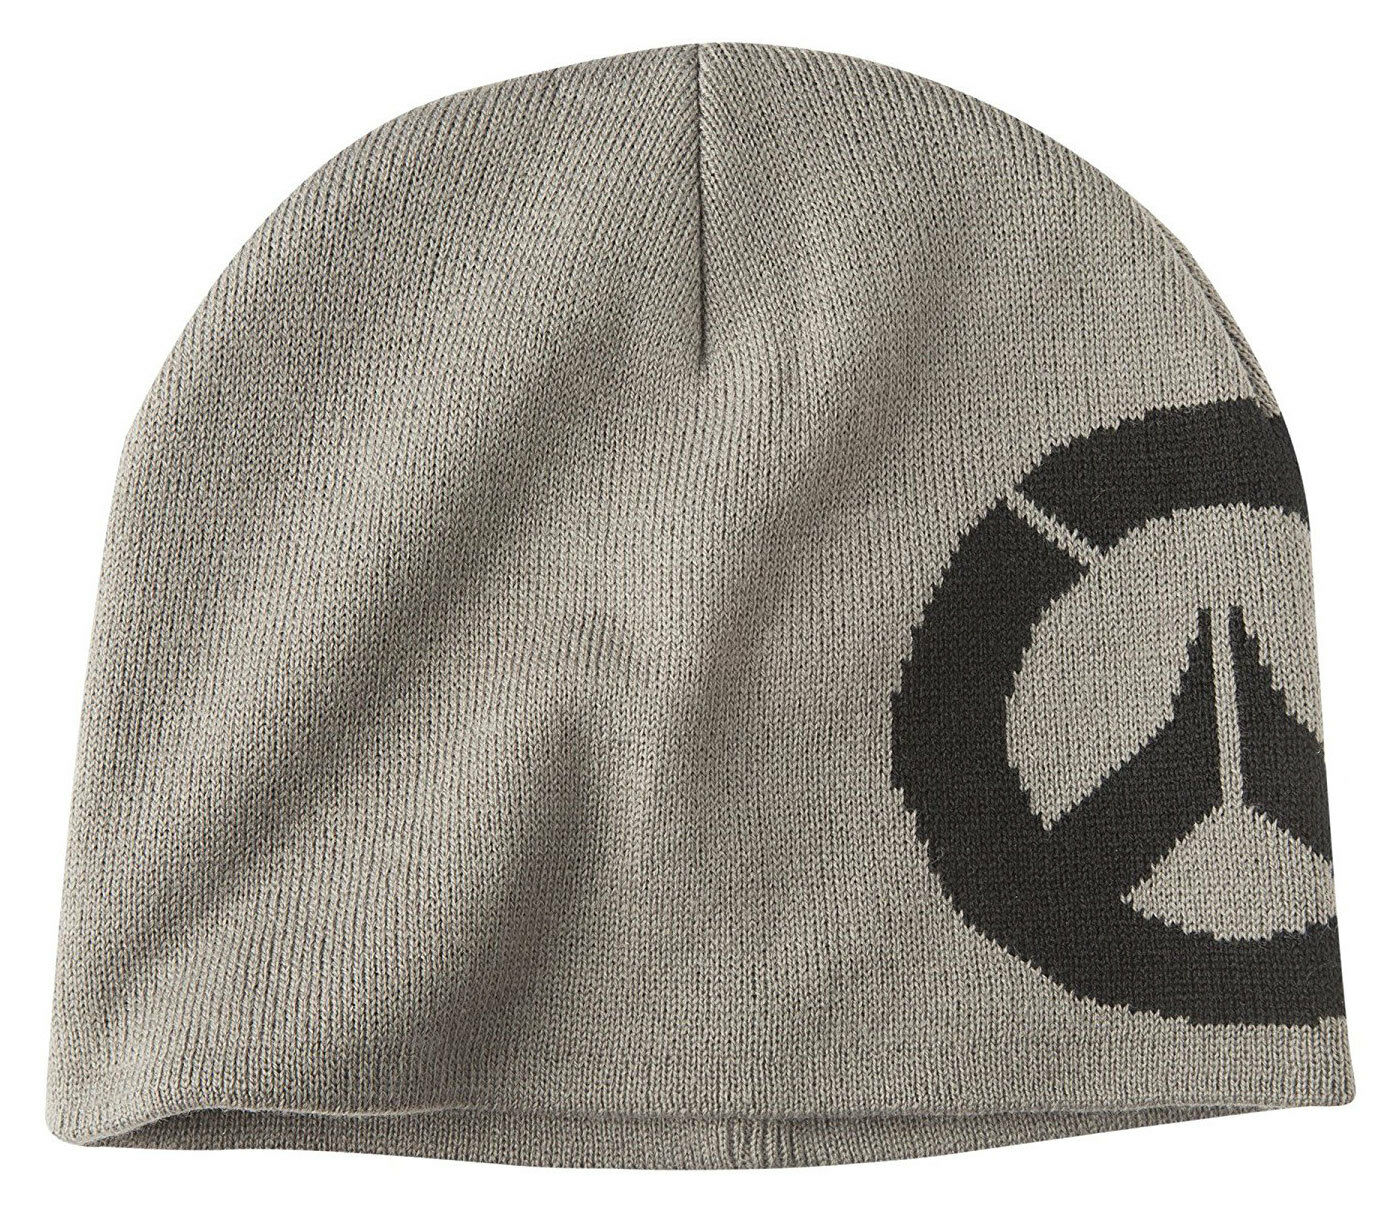 Overwatch Clutch Knit Beanie - Xbox Official Video Game PlayStation Xbox - One cc16af